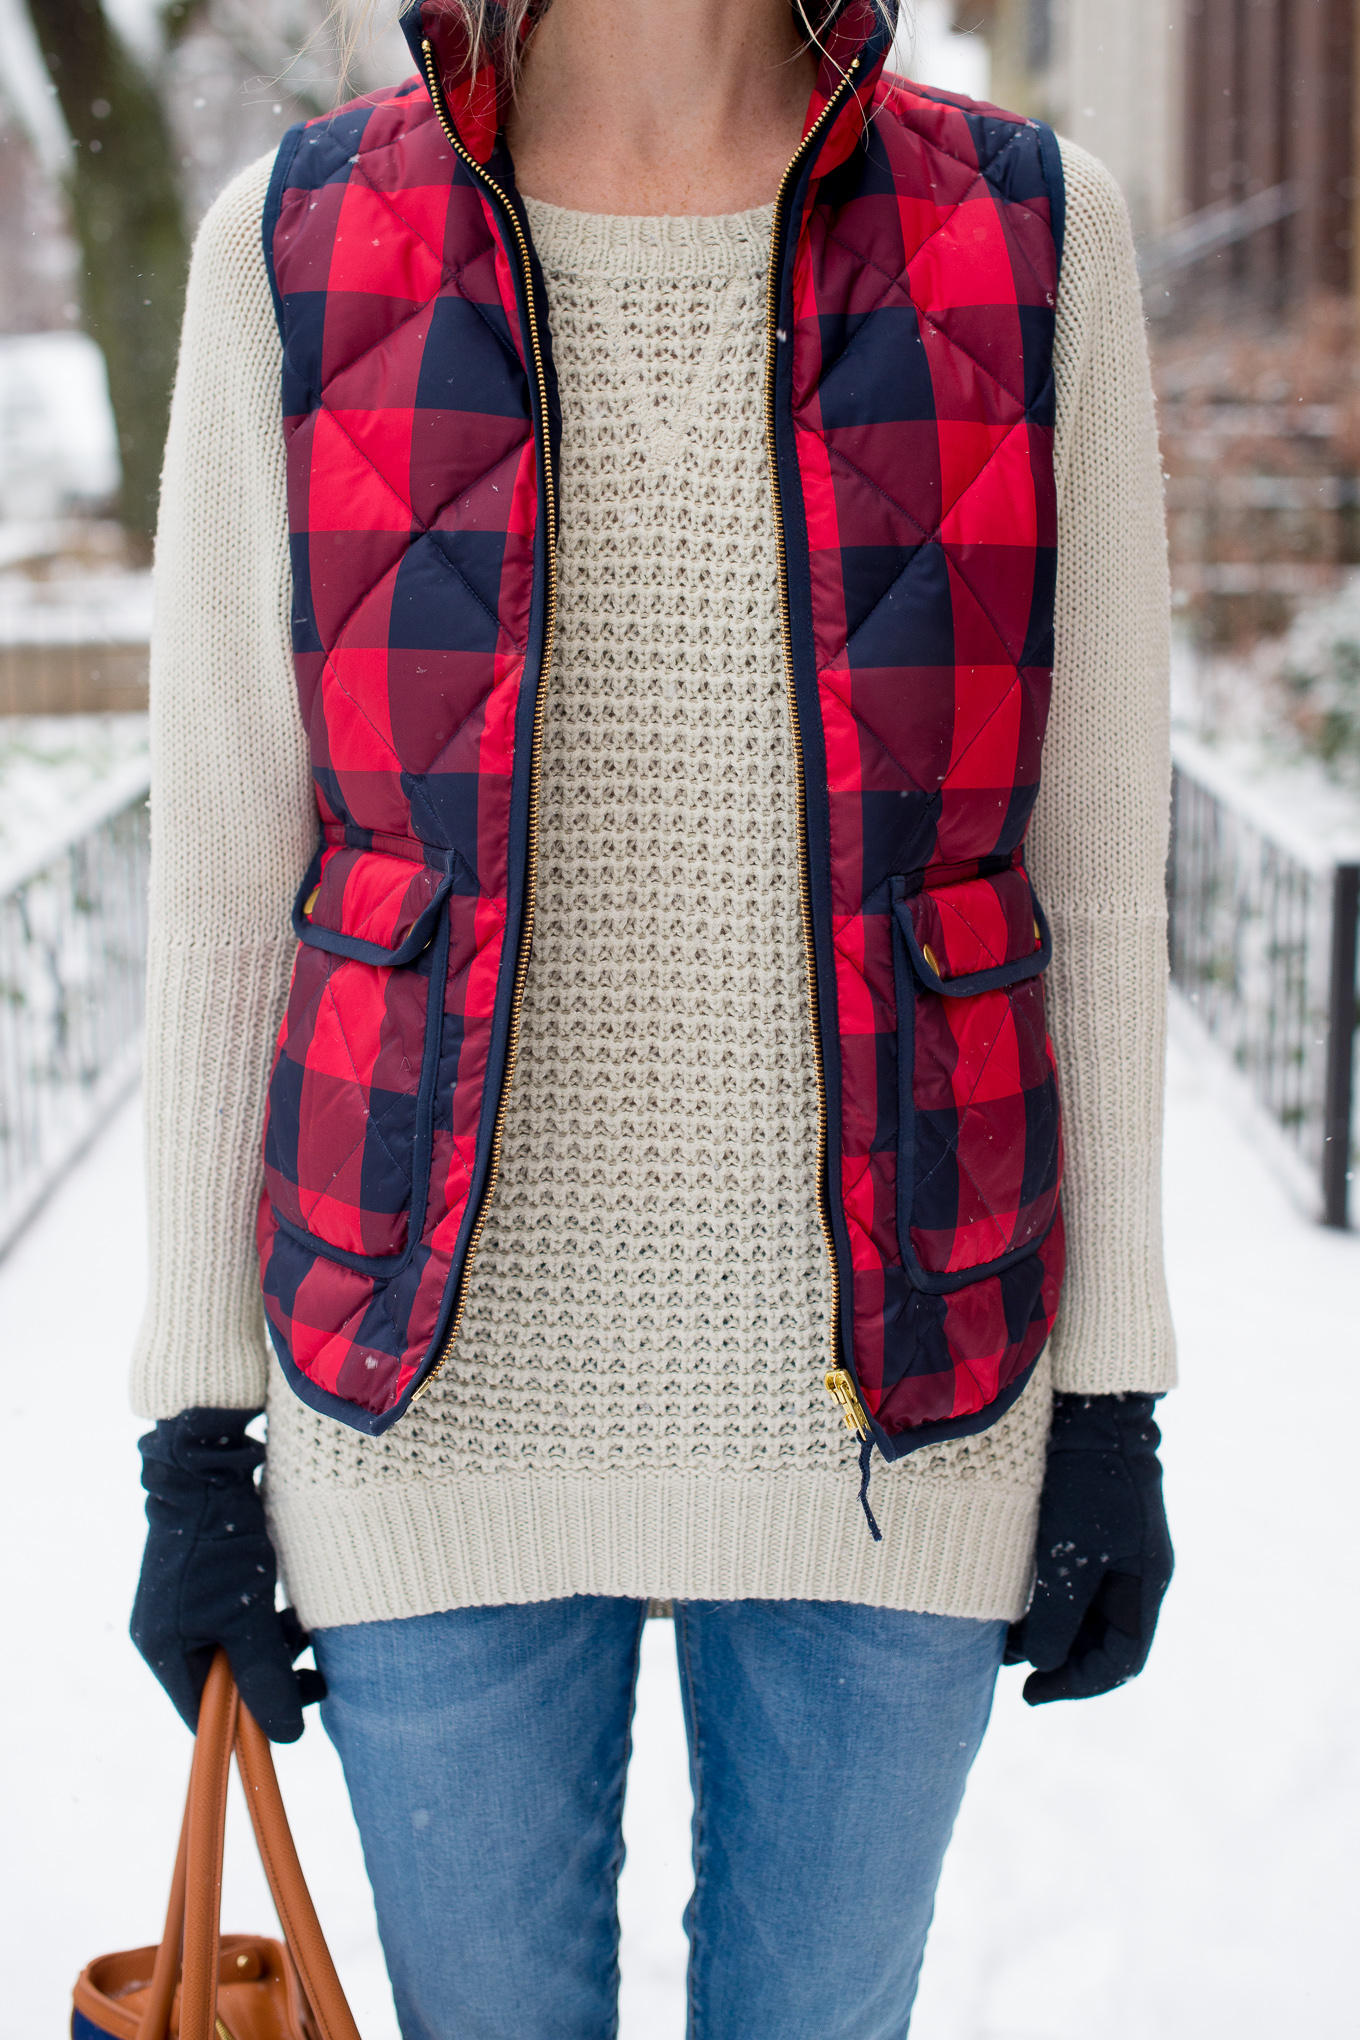 J Crew Buffalo Plaid Check Vest Kelly In The City